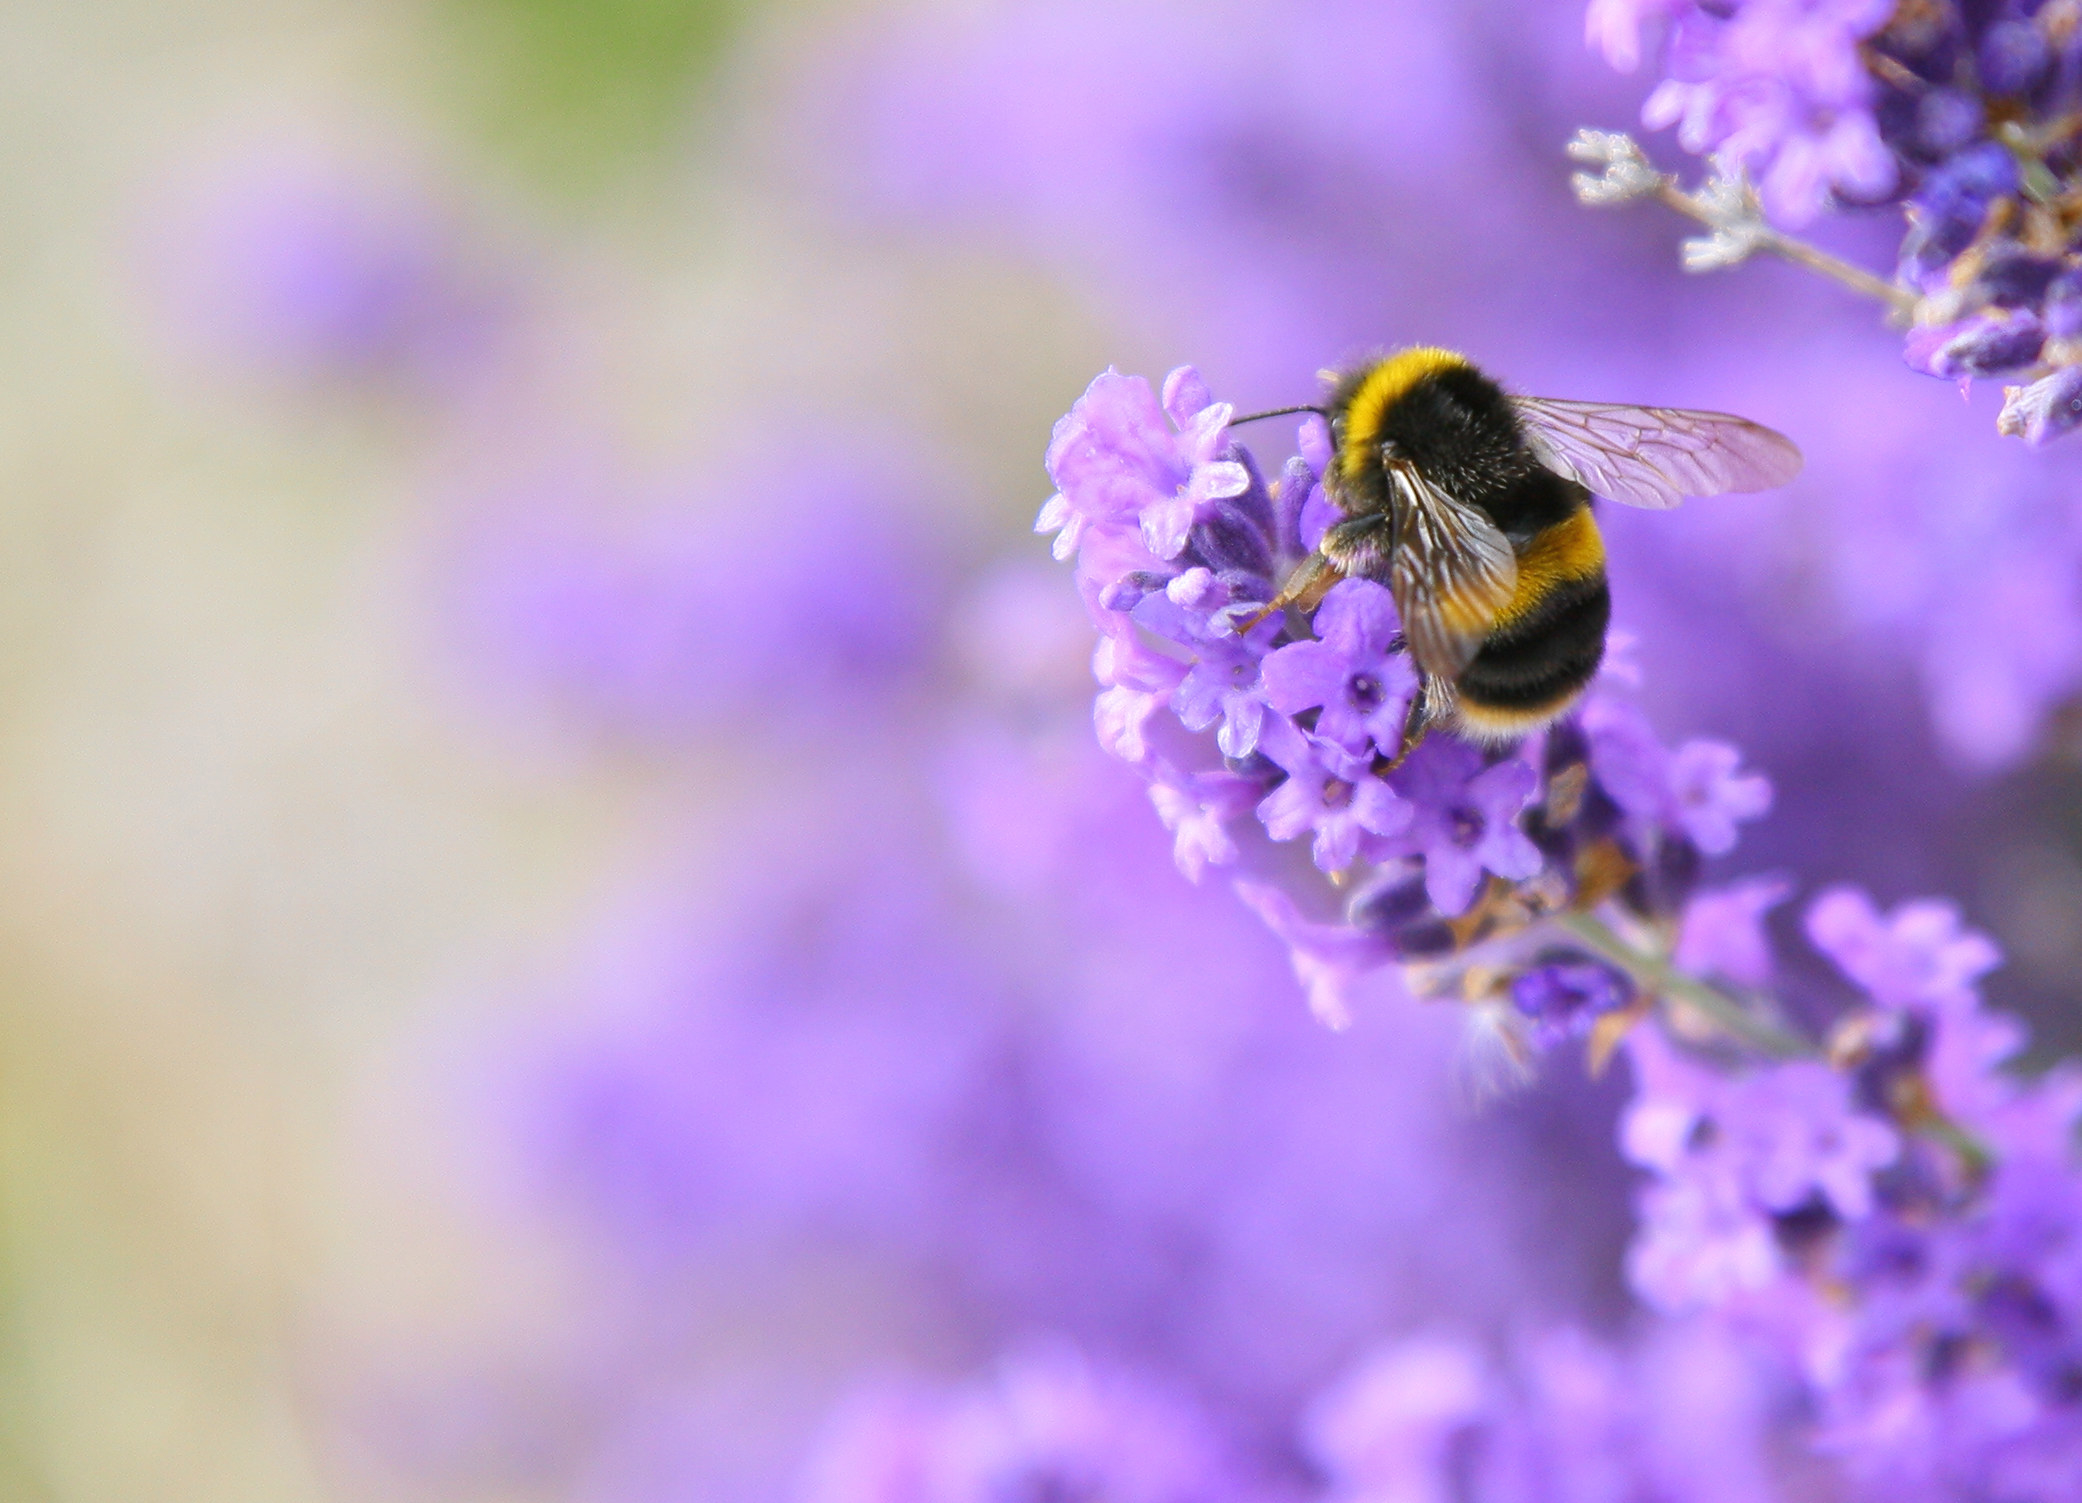 A bumblebee on a flower